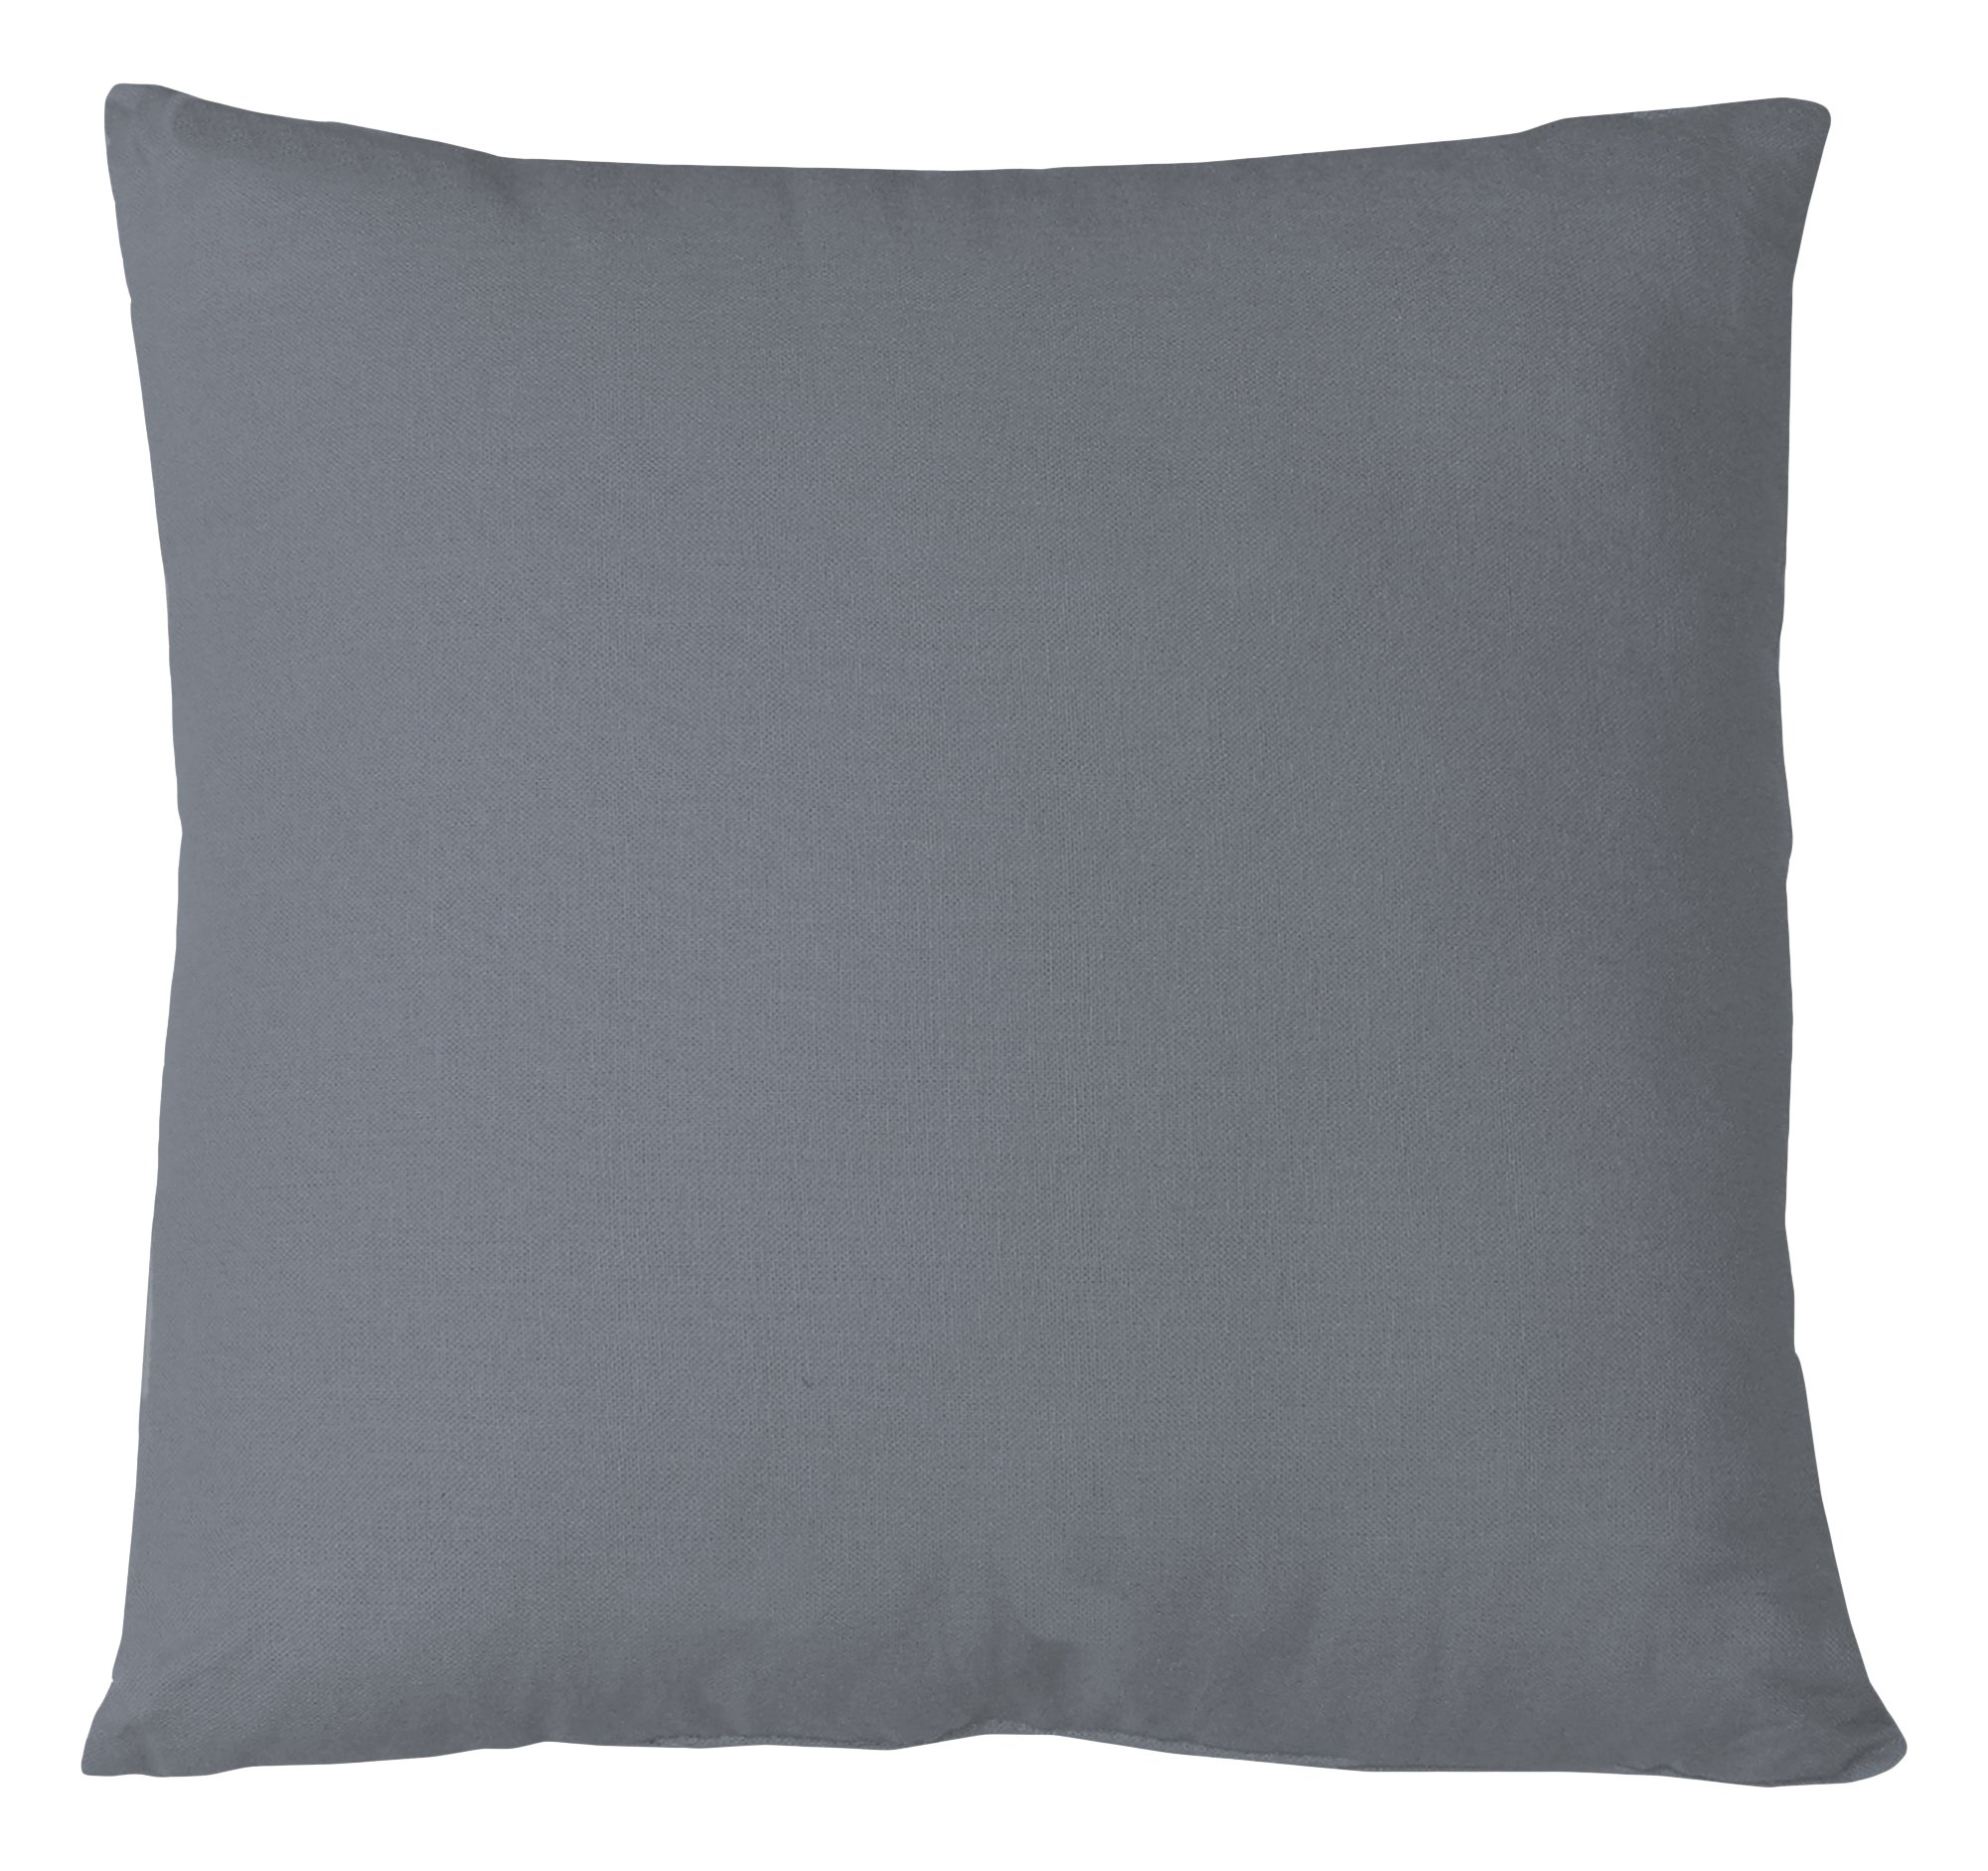 Elrene Home Fashions 026865879988 Decorative Linen Solid Couch/Sofa/Bed Cushion Pillow, 18'' x 18'', Gray